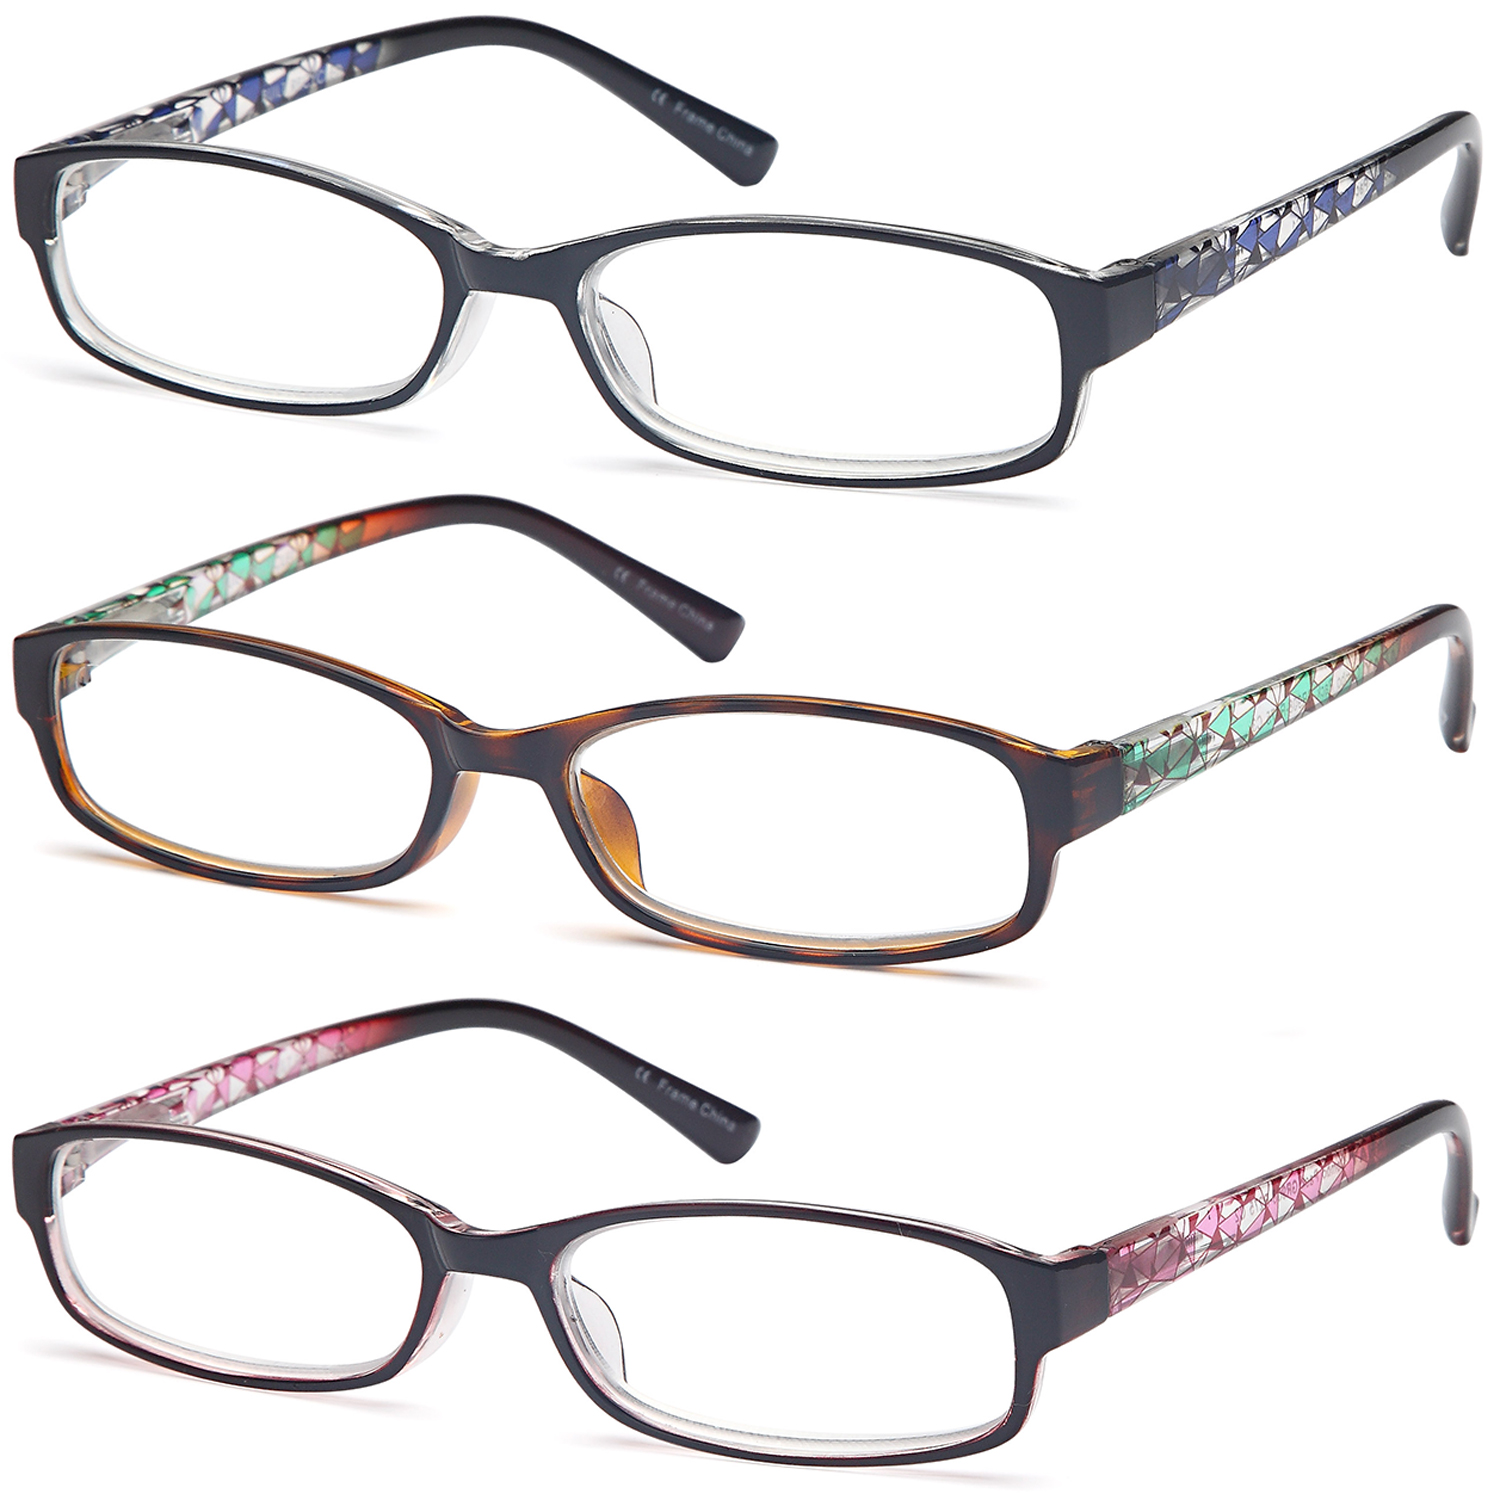 f2548464392 GAMMA RAY Readers 3 Pack of Thin and Elegant Womens Reading Glasses with  Beautiful Patterns for Ladies - 1.25x - Walmart.com